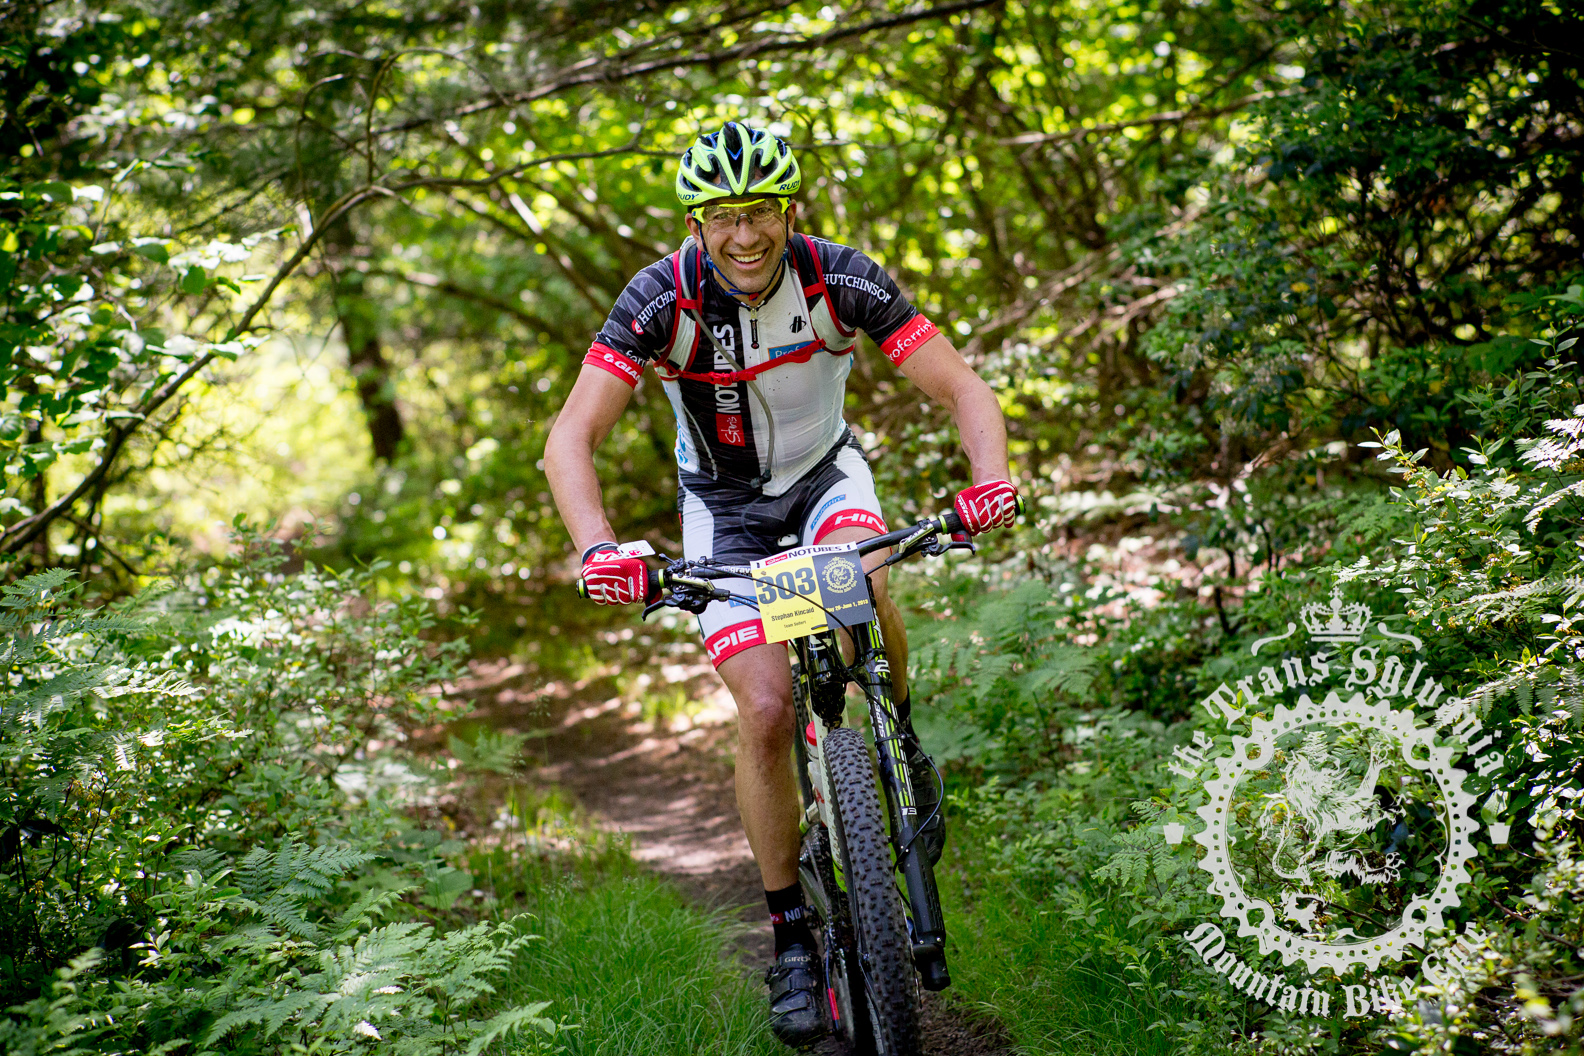 SPOT rider tracking added at NoTubes Trans-Sylvania Epic mountain bike race